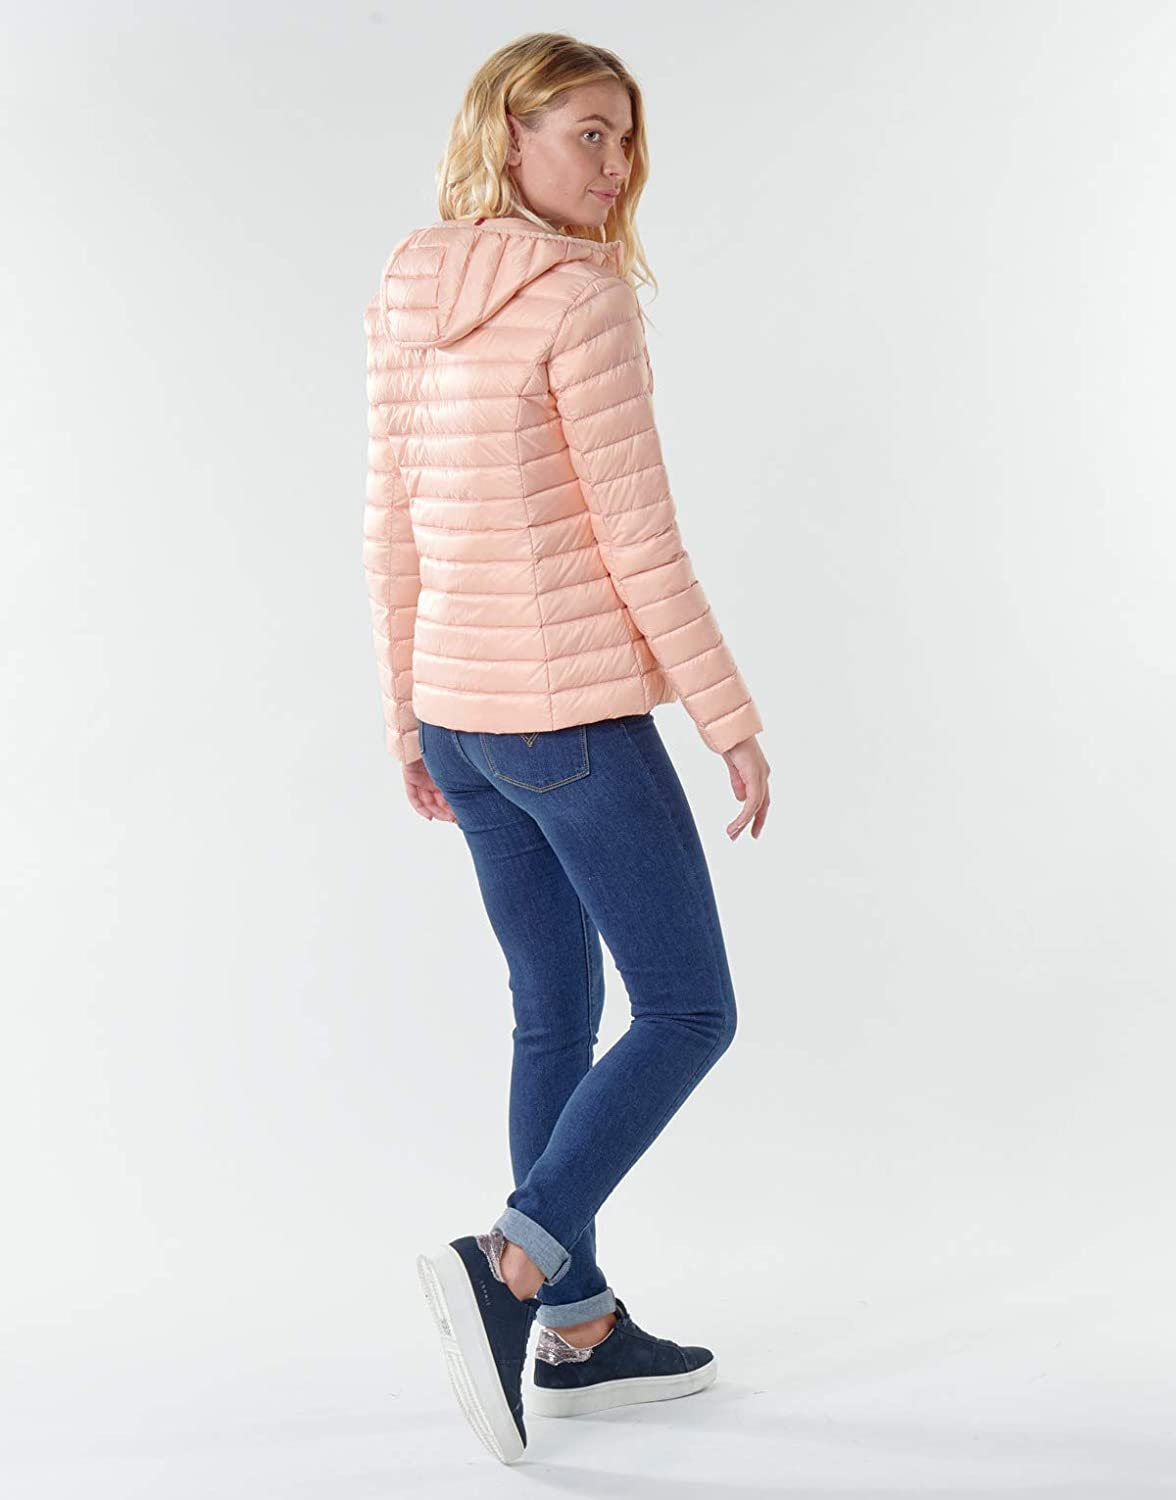 JUST OVER THE TOP, Cloe ml capuche basique, Vieux rose Rosa